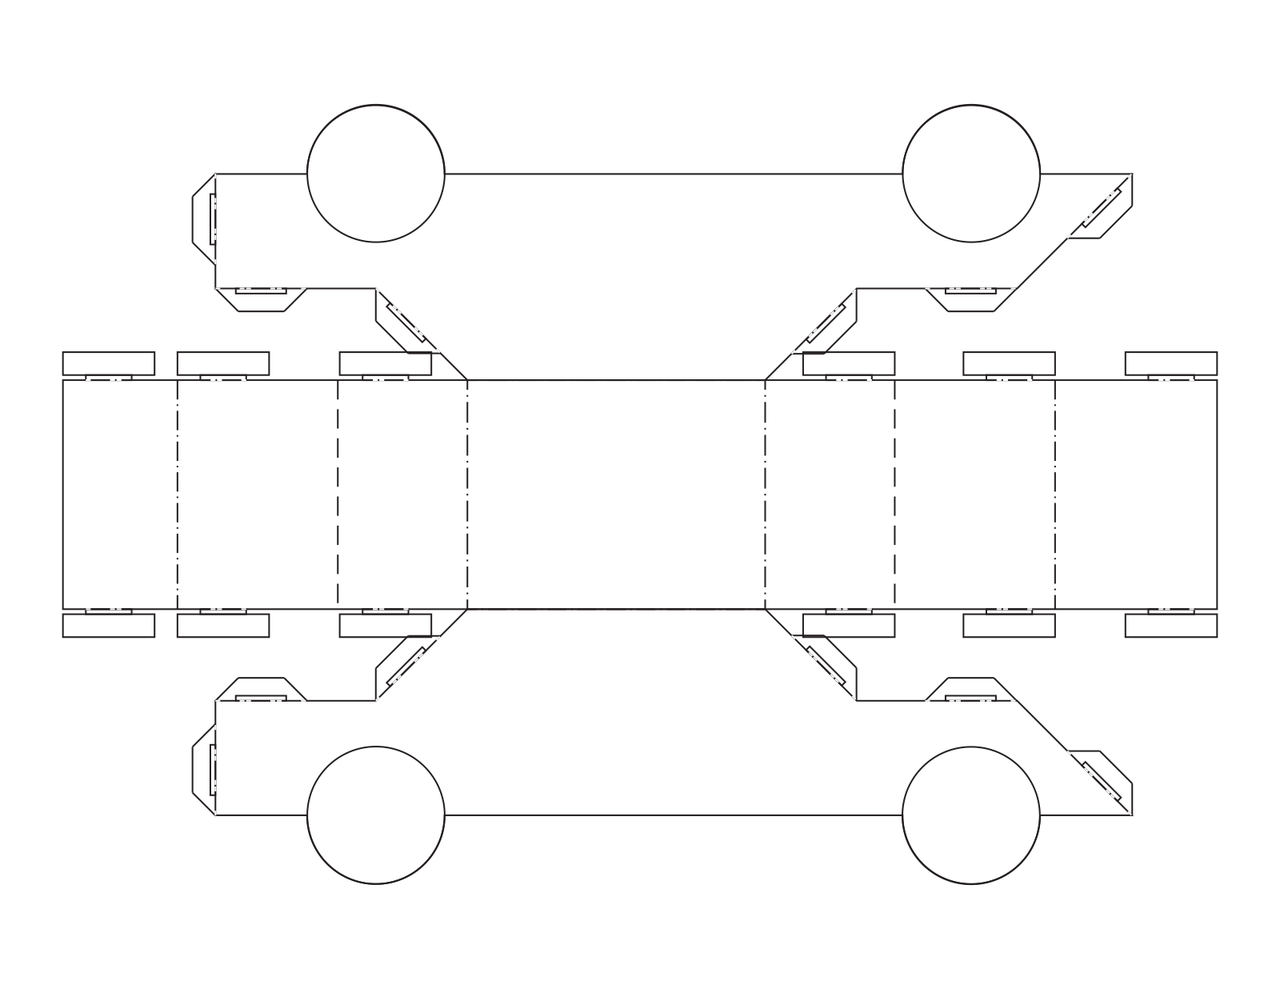 /images/itp/paper_engineering/week3/car_design.png